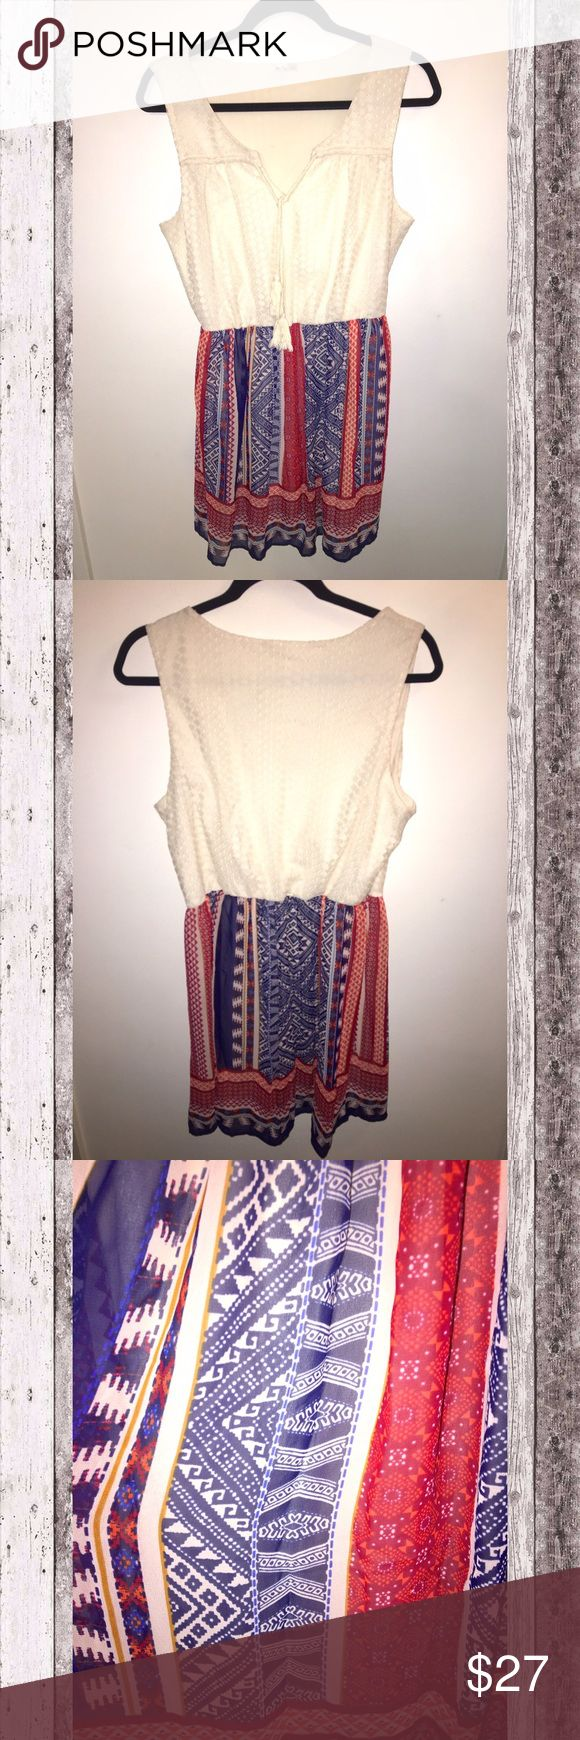 Tribal Print Dress Beautiful Tribal Print Dress! Perfect to add to your spring collection🌞 Features sheer blue, red & orange tribal print. Upper part of dress is white lace with attached dangle strings. Stretchy elastic cinched waist. Fully lined. Very comfortable & flowy. Size Large.                                                                              ✨Top Rated Seller✨ Fast Shipper👍🏻 10% off 3+ bundle💖 AUW Dresses Midi